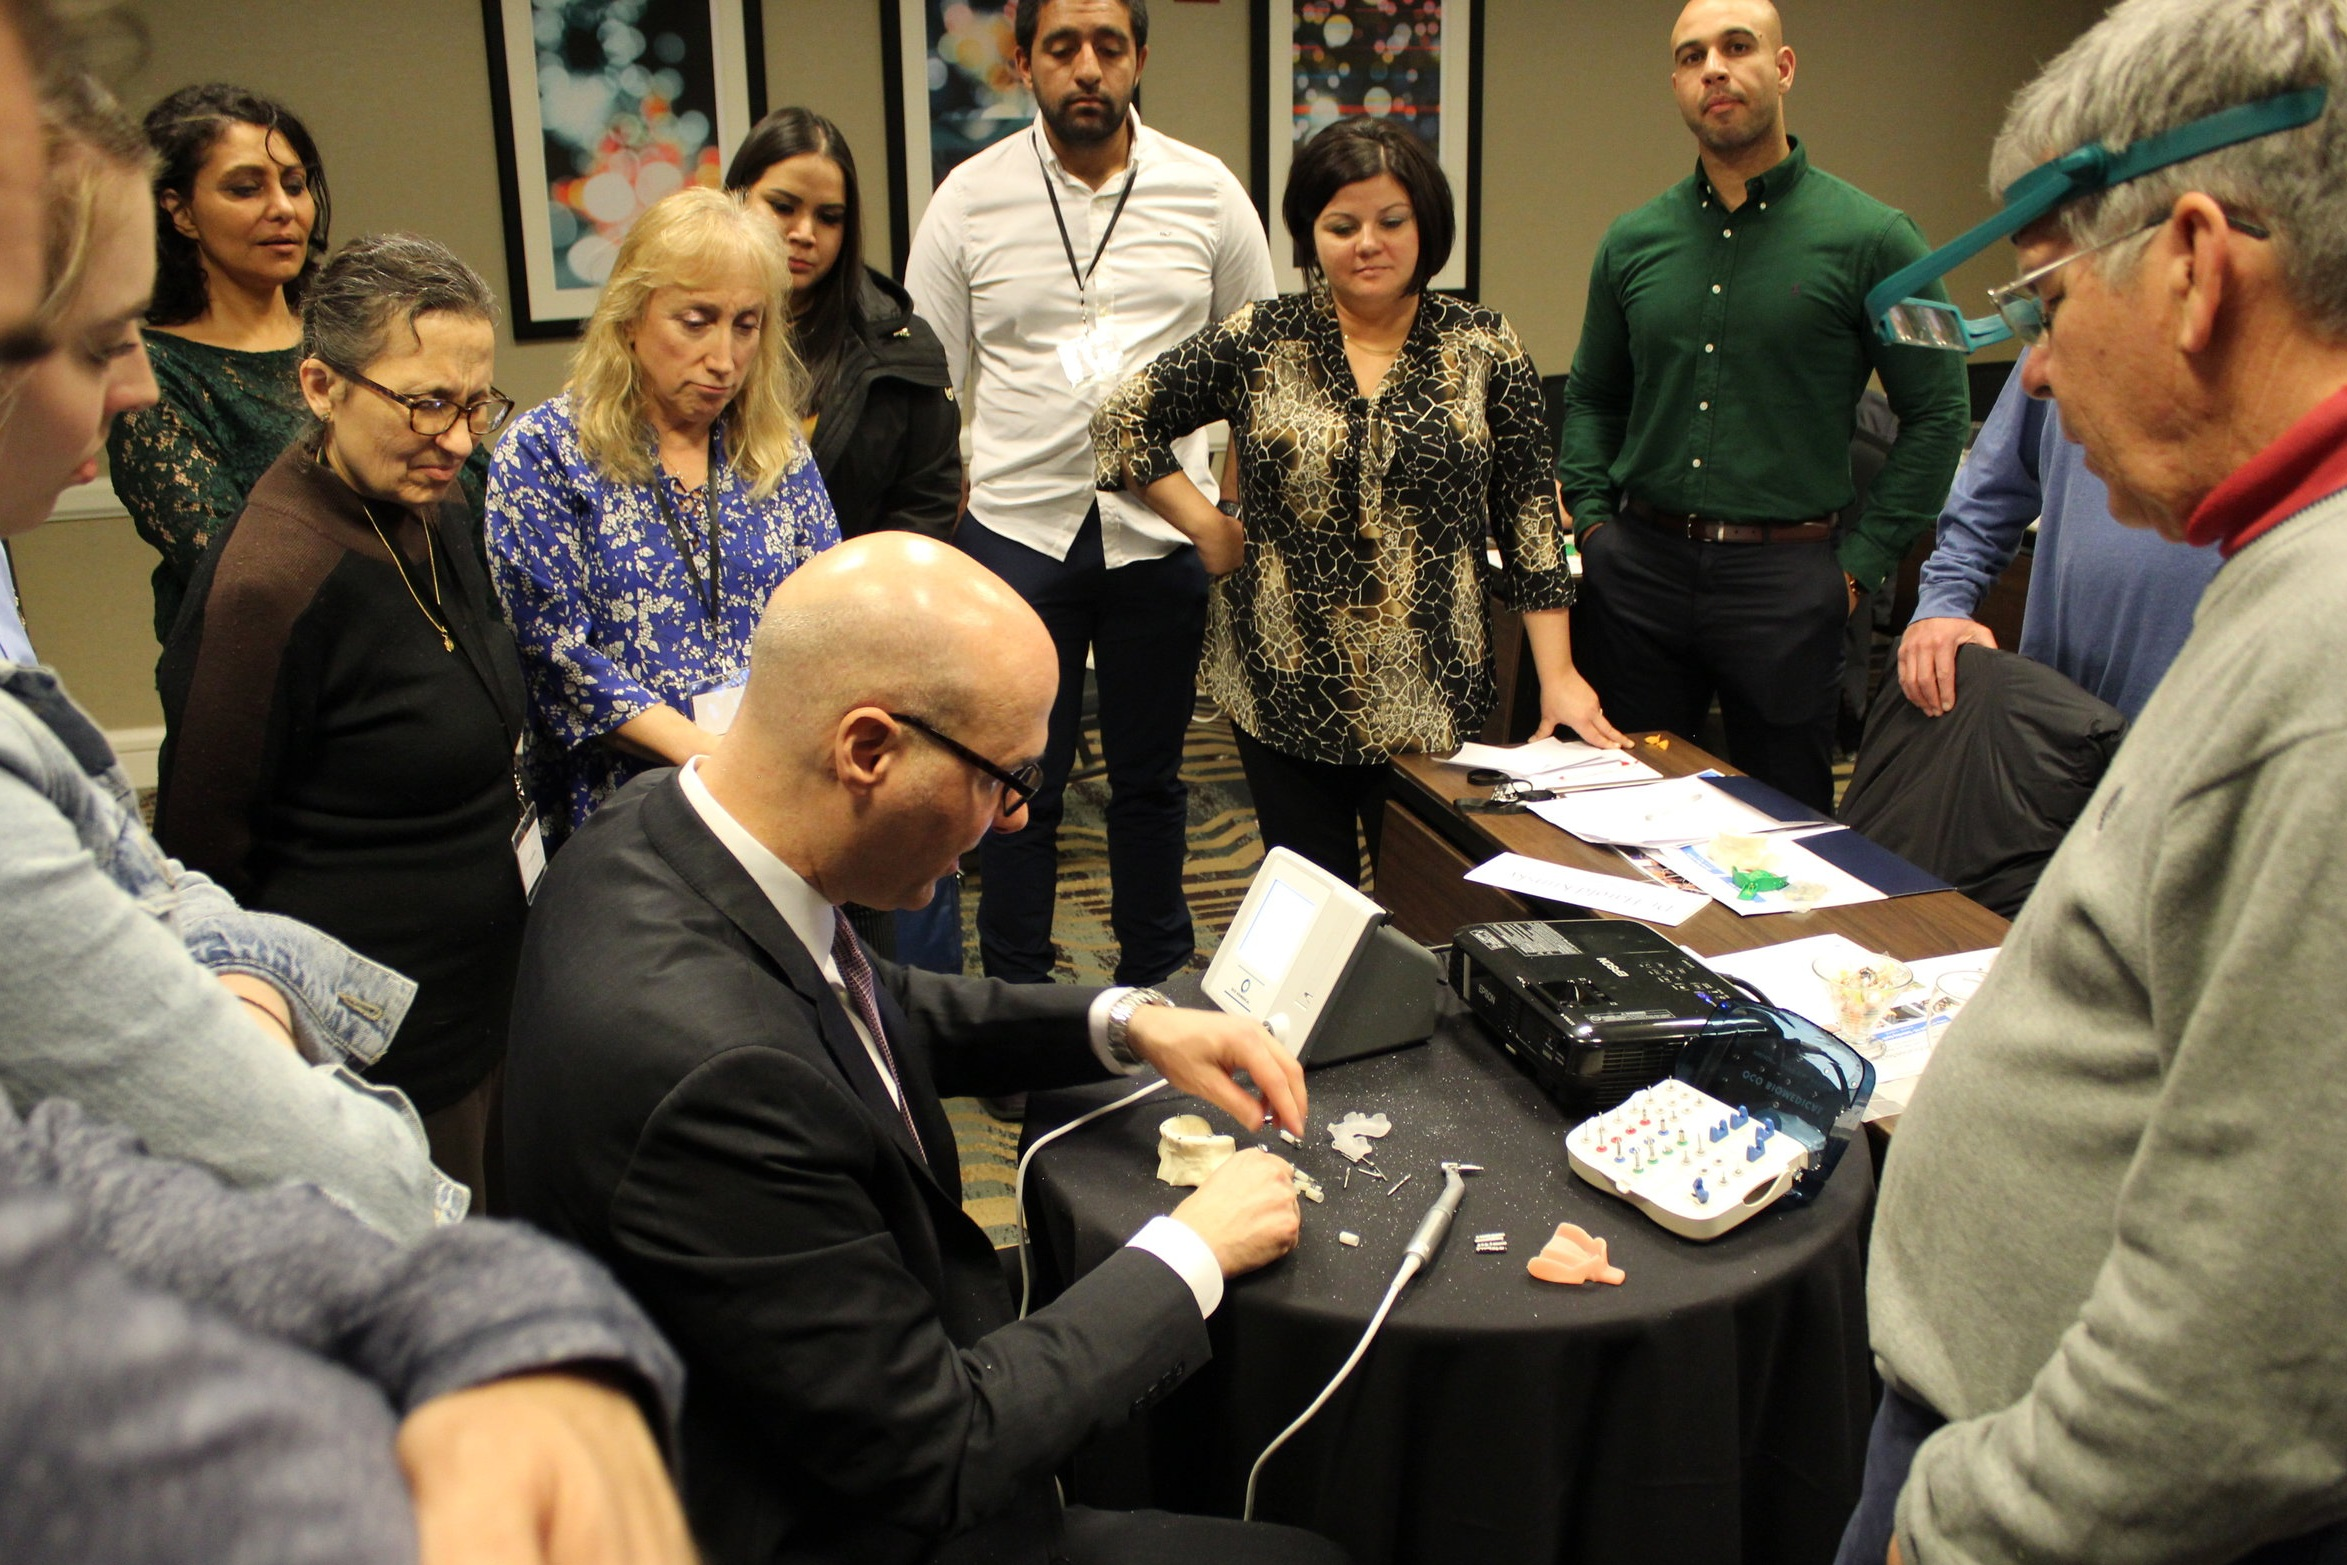 Dr. Nazarian demonstrating the hands-on portion at Module 3 Simplifying Full-Mouth Implant Reconstruction with Guided Surgery